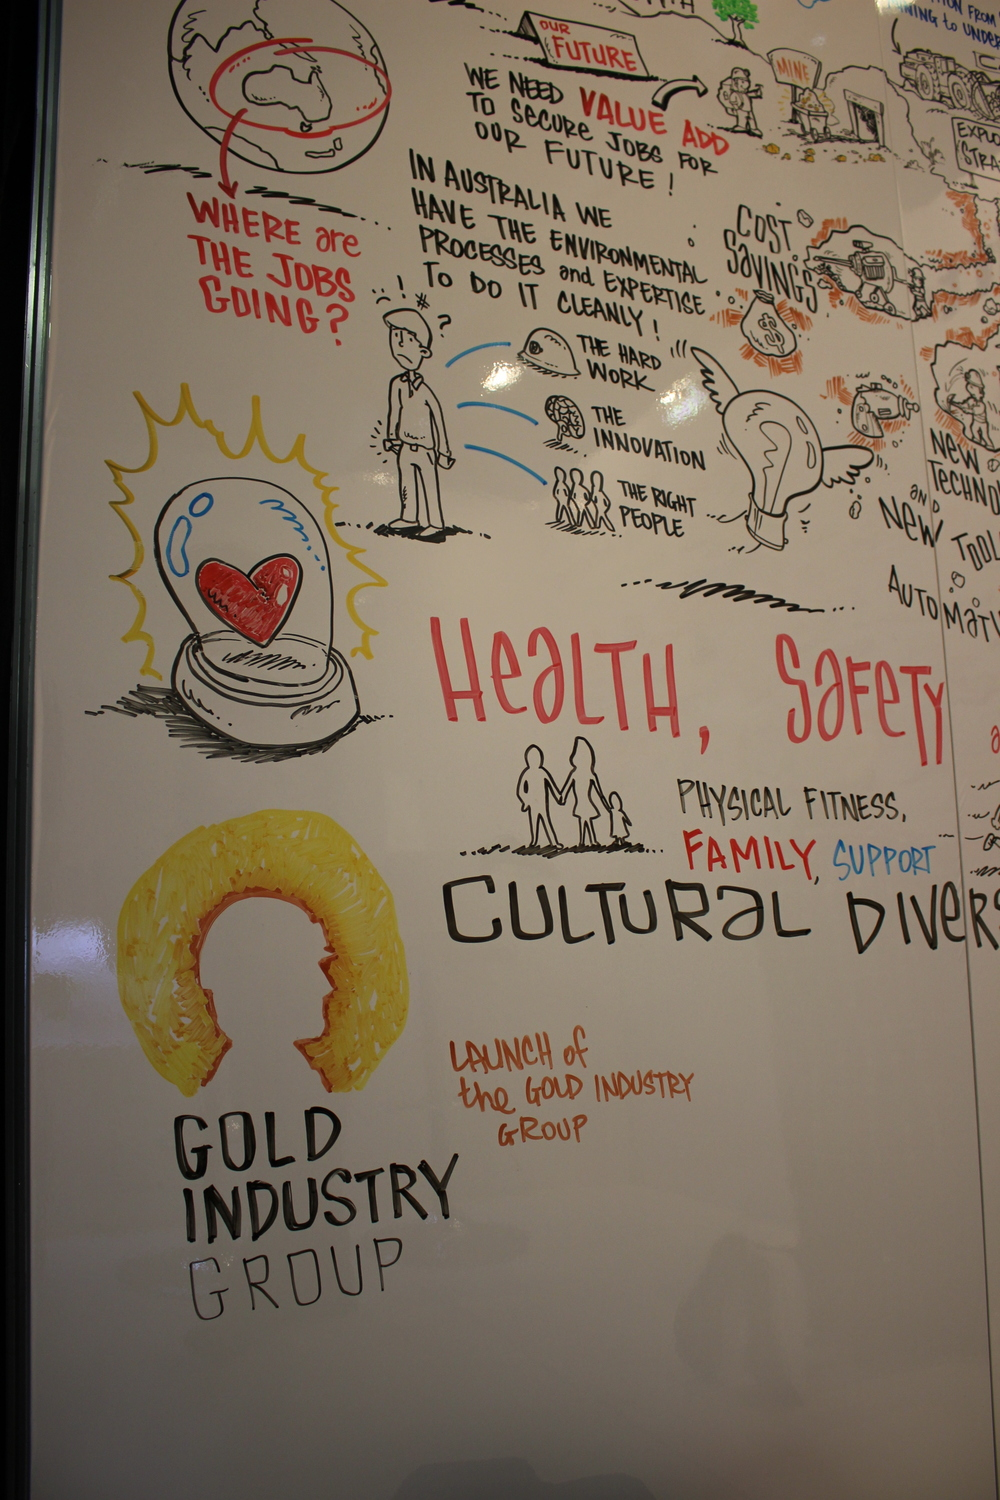 Gold Industry Group made it to the live scribe board at Deloitte's Diggers & Dealers booth